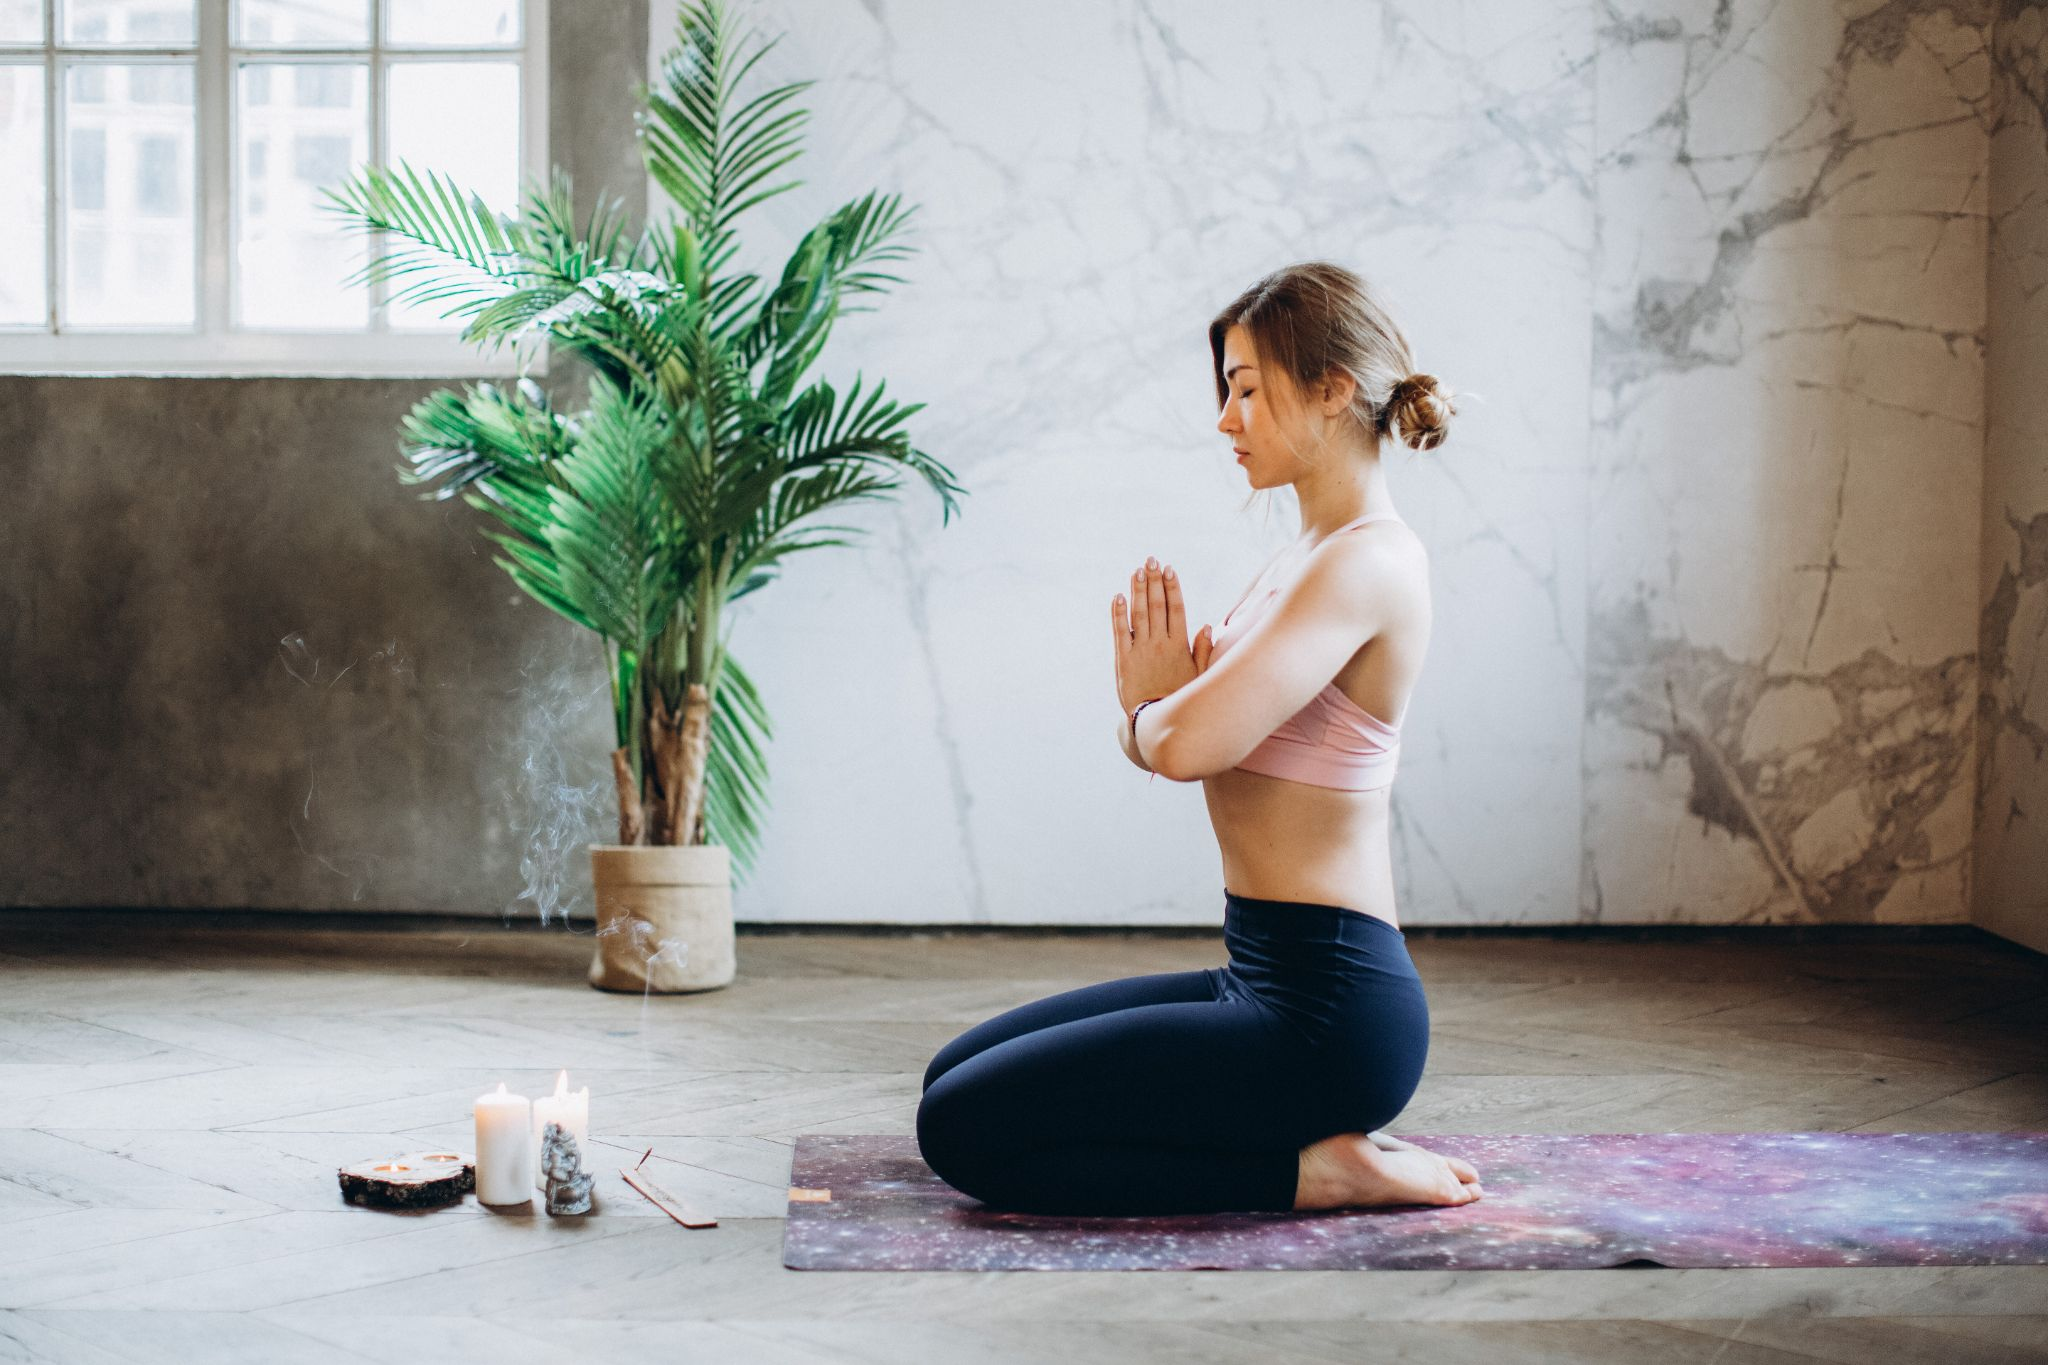 Yoga can be used as exercises for someone coughing